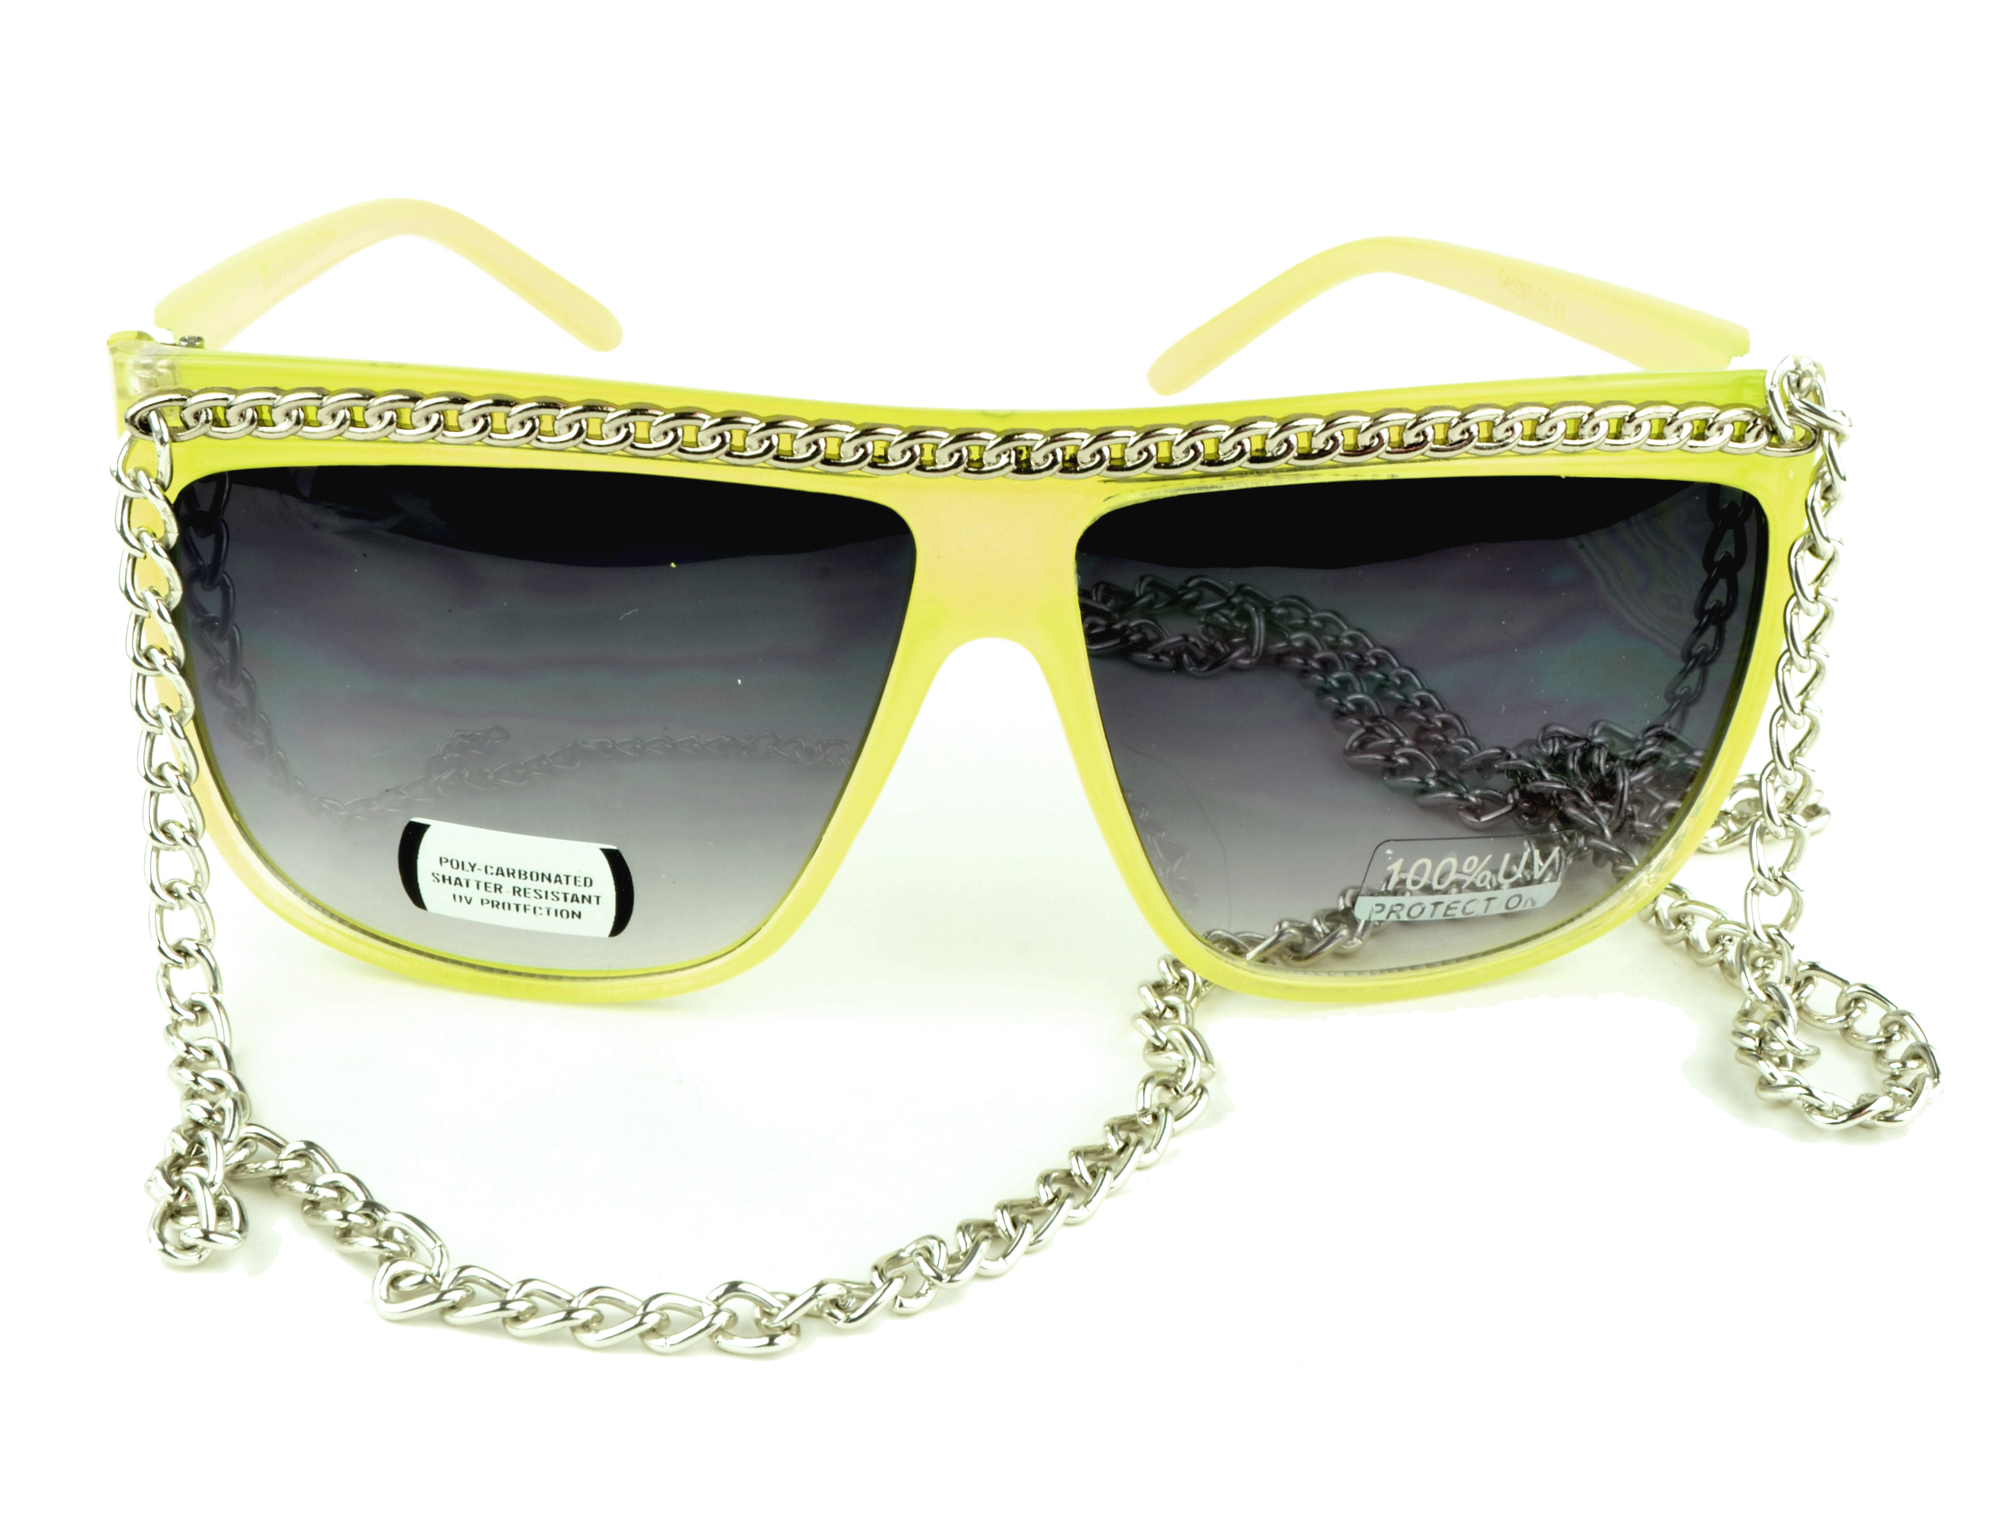 Belle Donne - Women's Hot Celebrity Style Chain Fashion Sunglasses - Yellow One Size